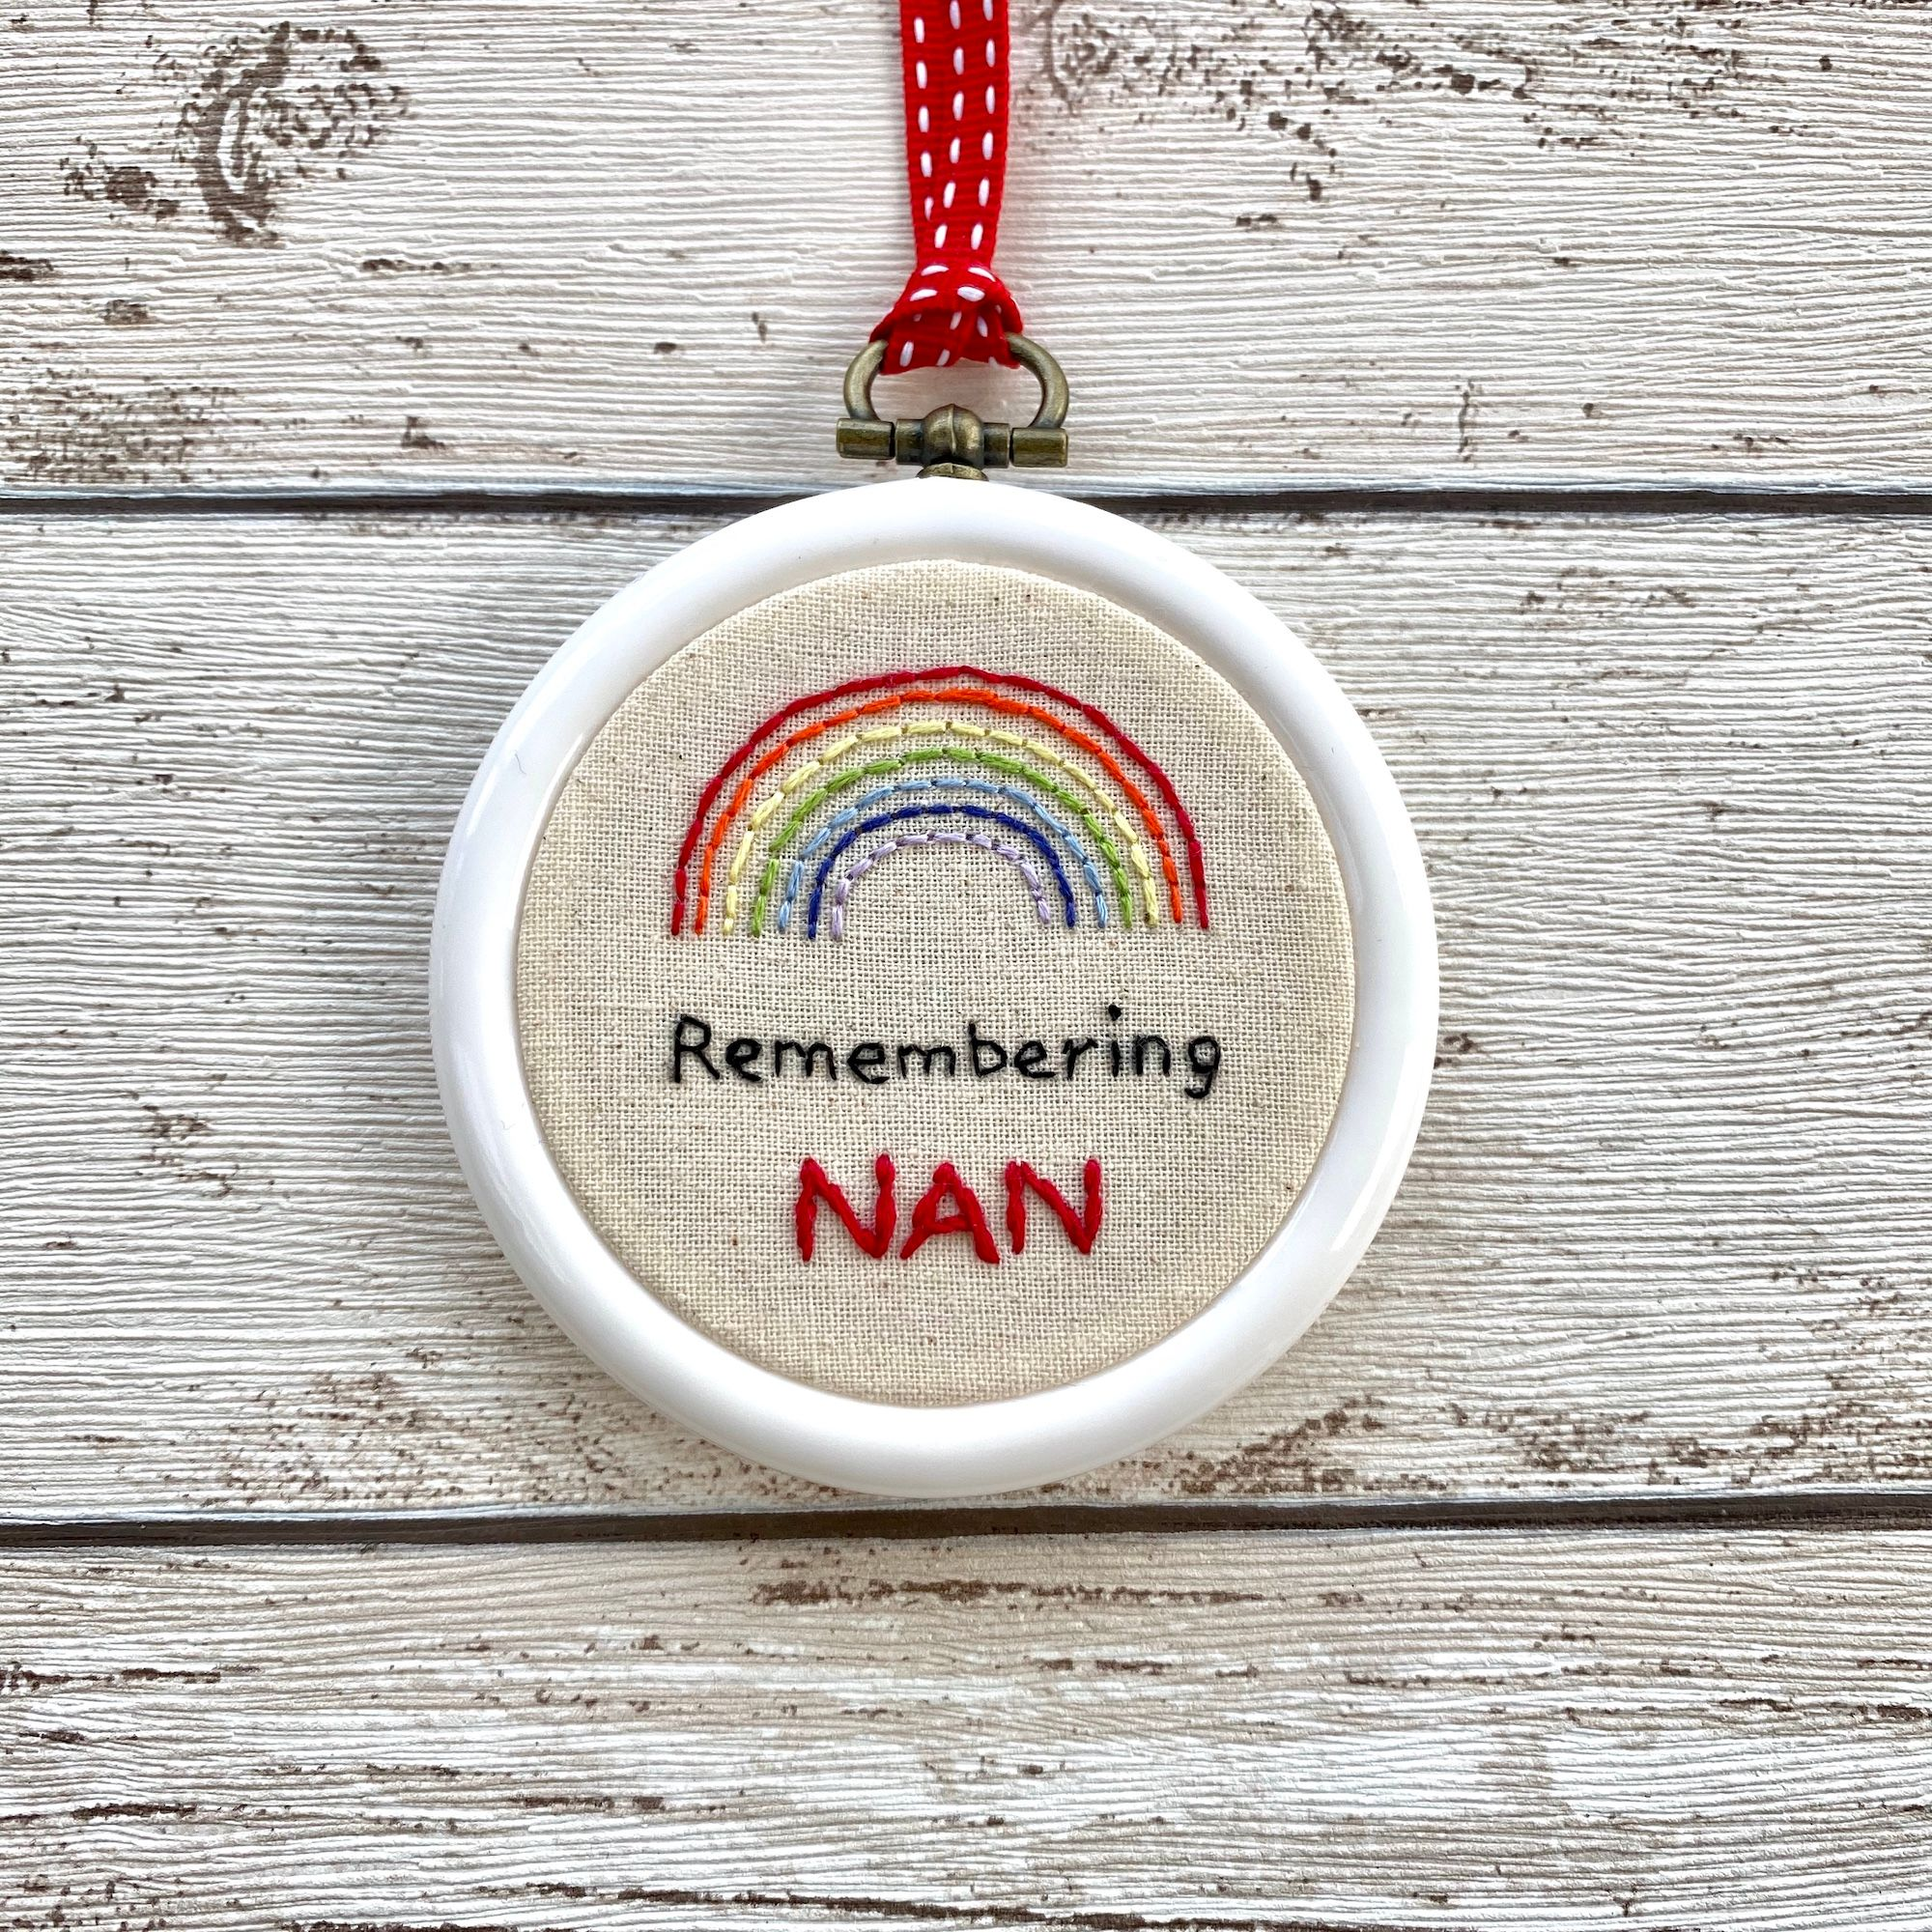 A white hoop with a stitched rainbow over the stitched words Remembering Nan.  Shown on a wooden surface.